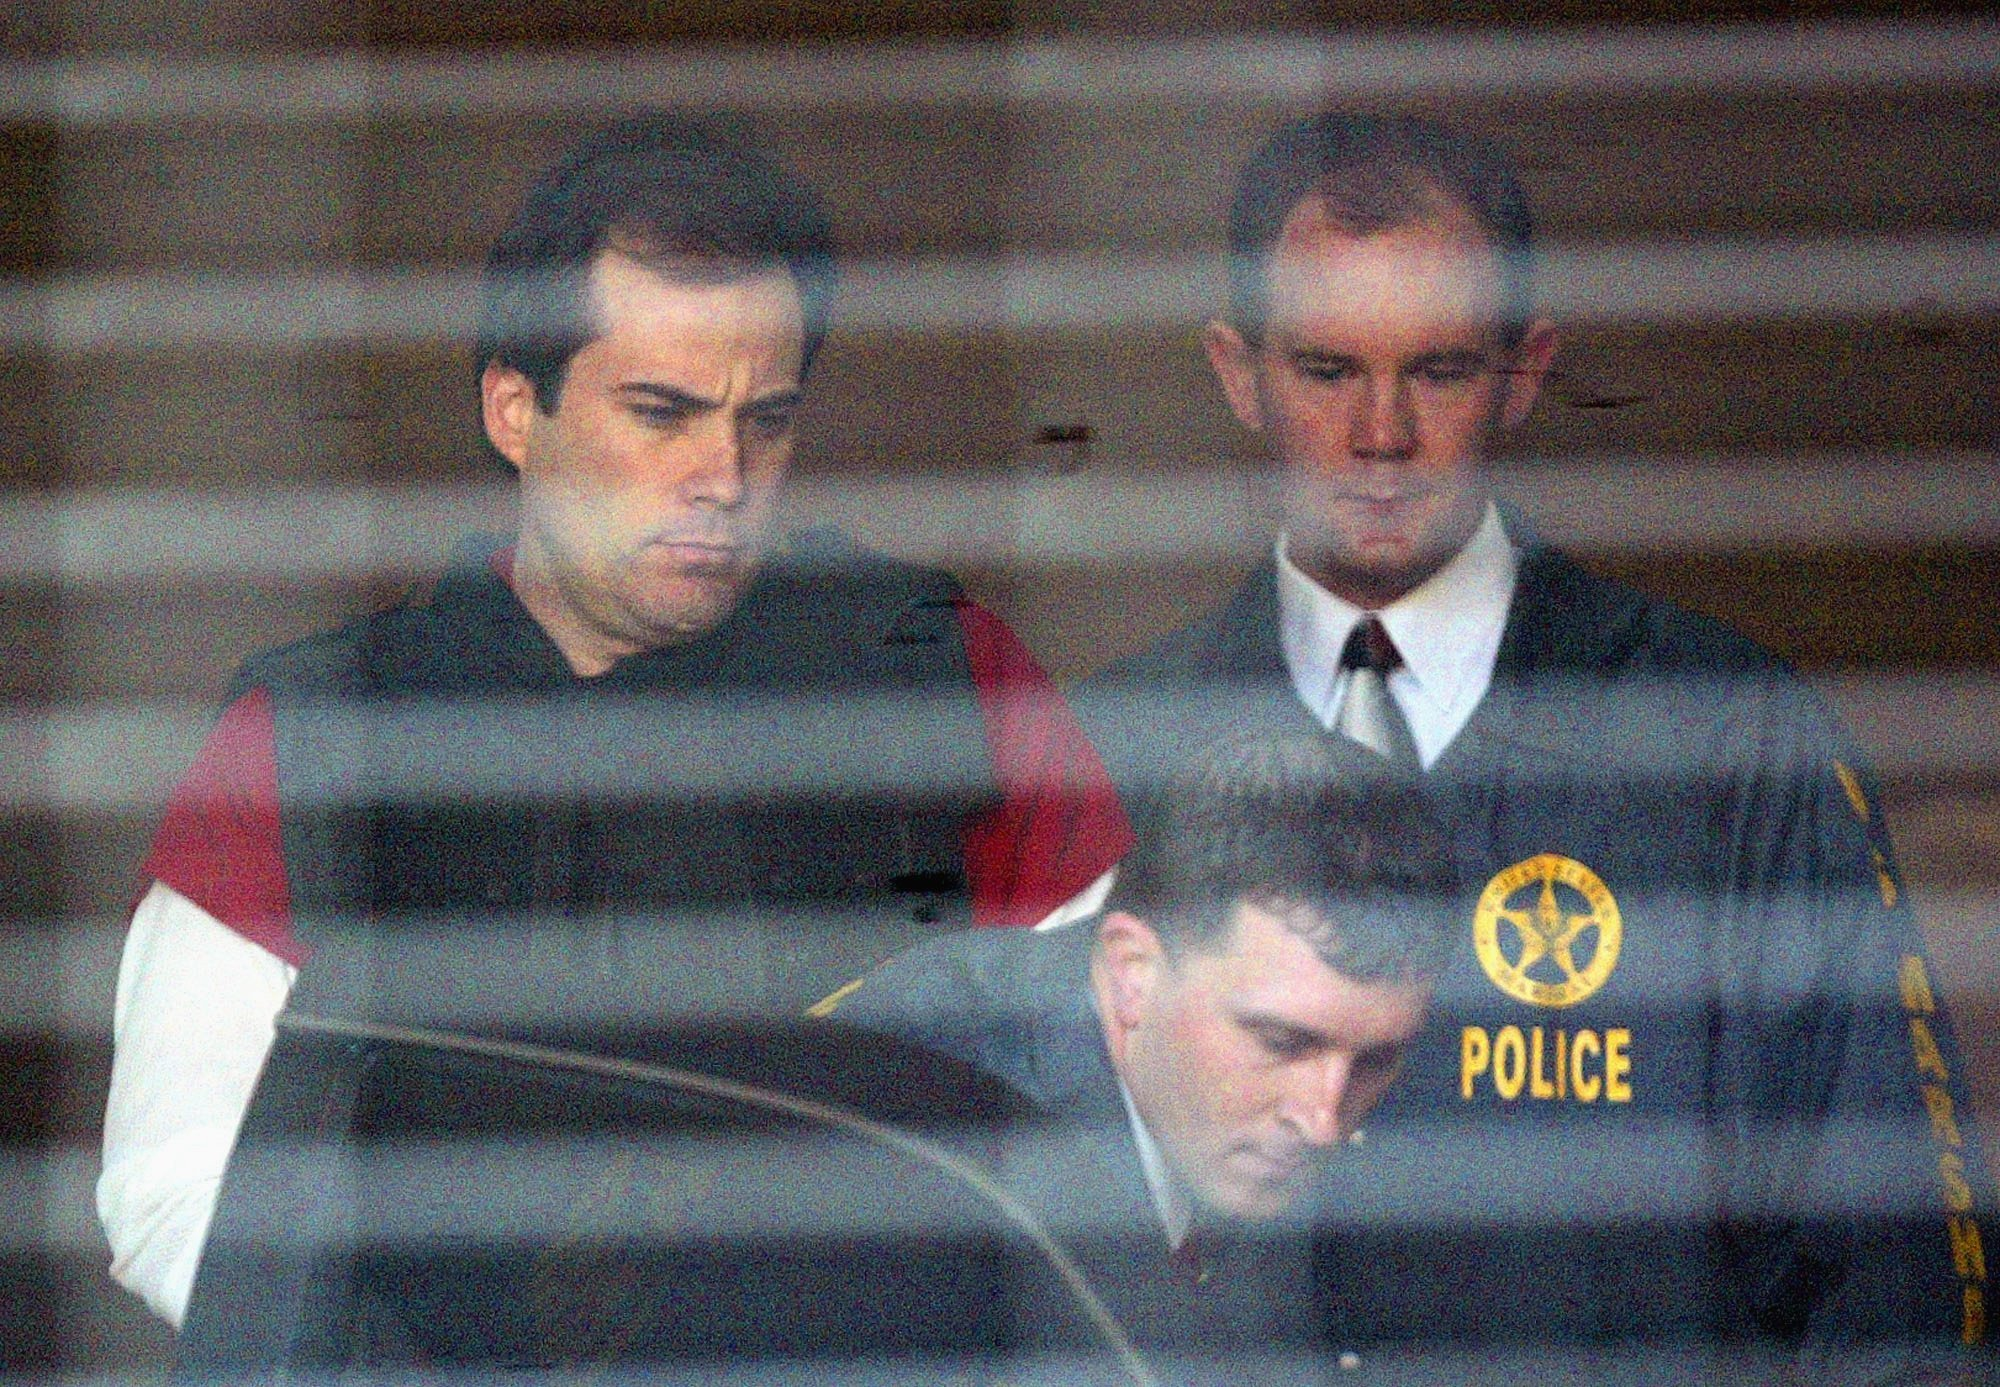 Eric Robert Rudolph fighting convictions in Olympic, clinic bombings